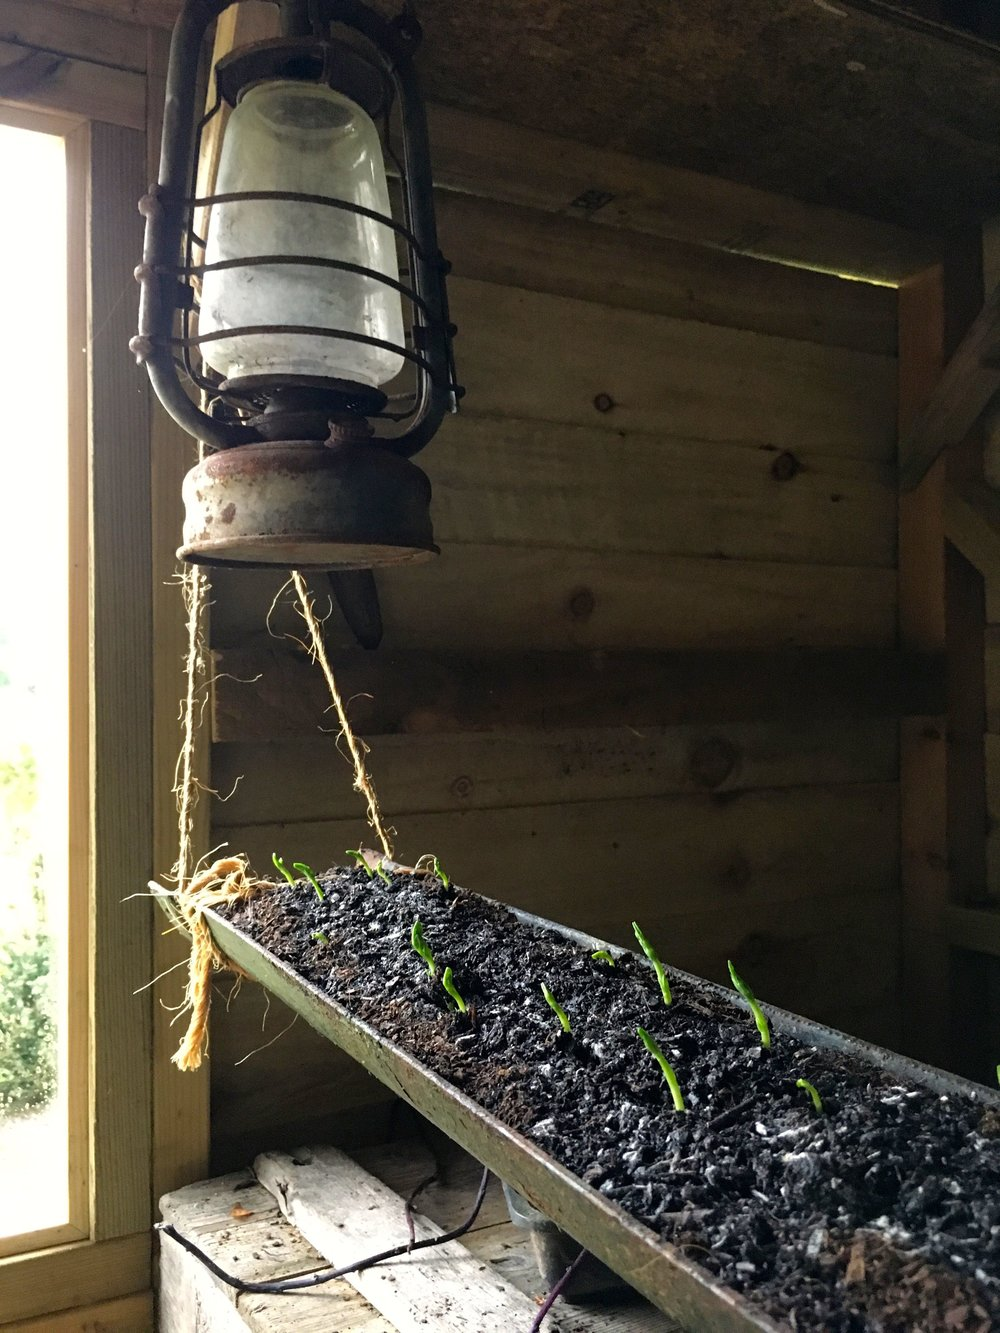 hanging peas in a gutter - now there's an idea